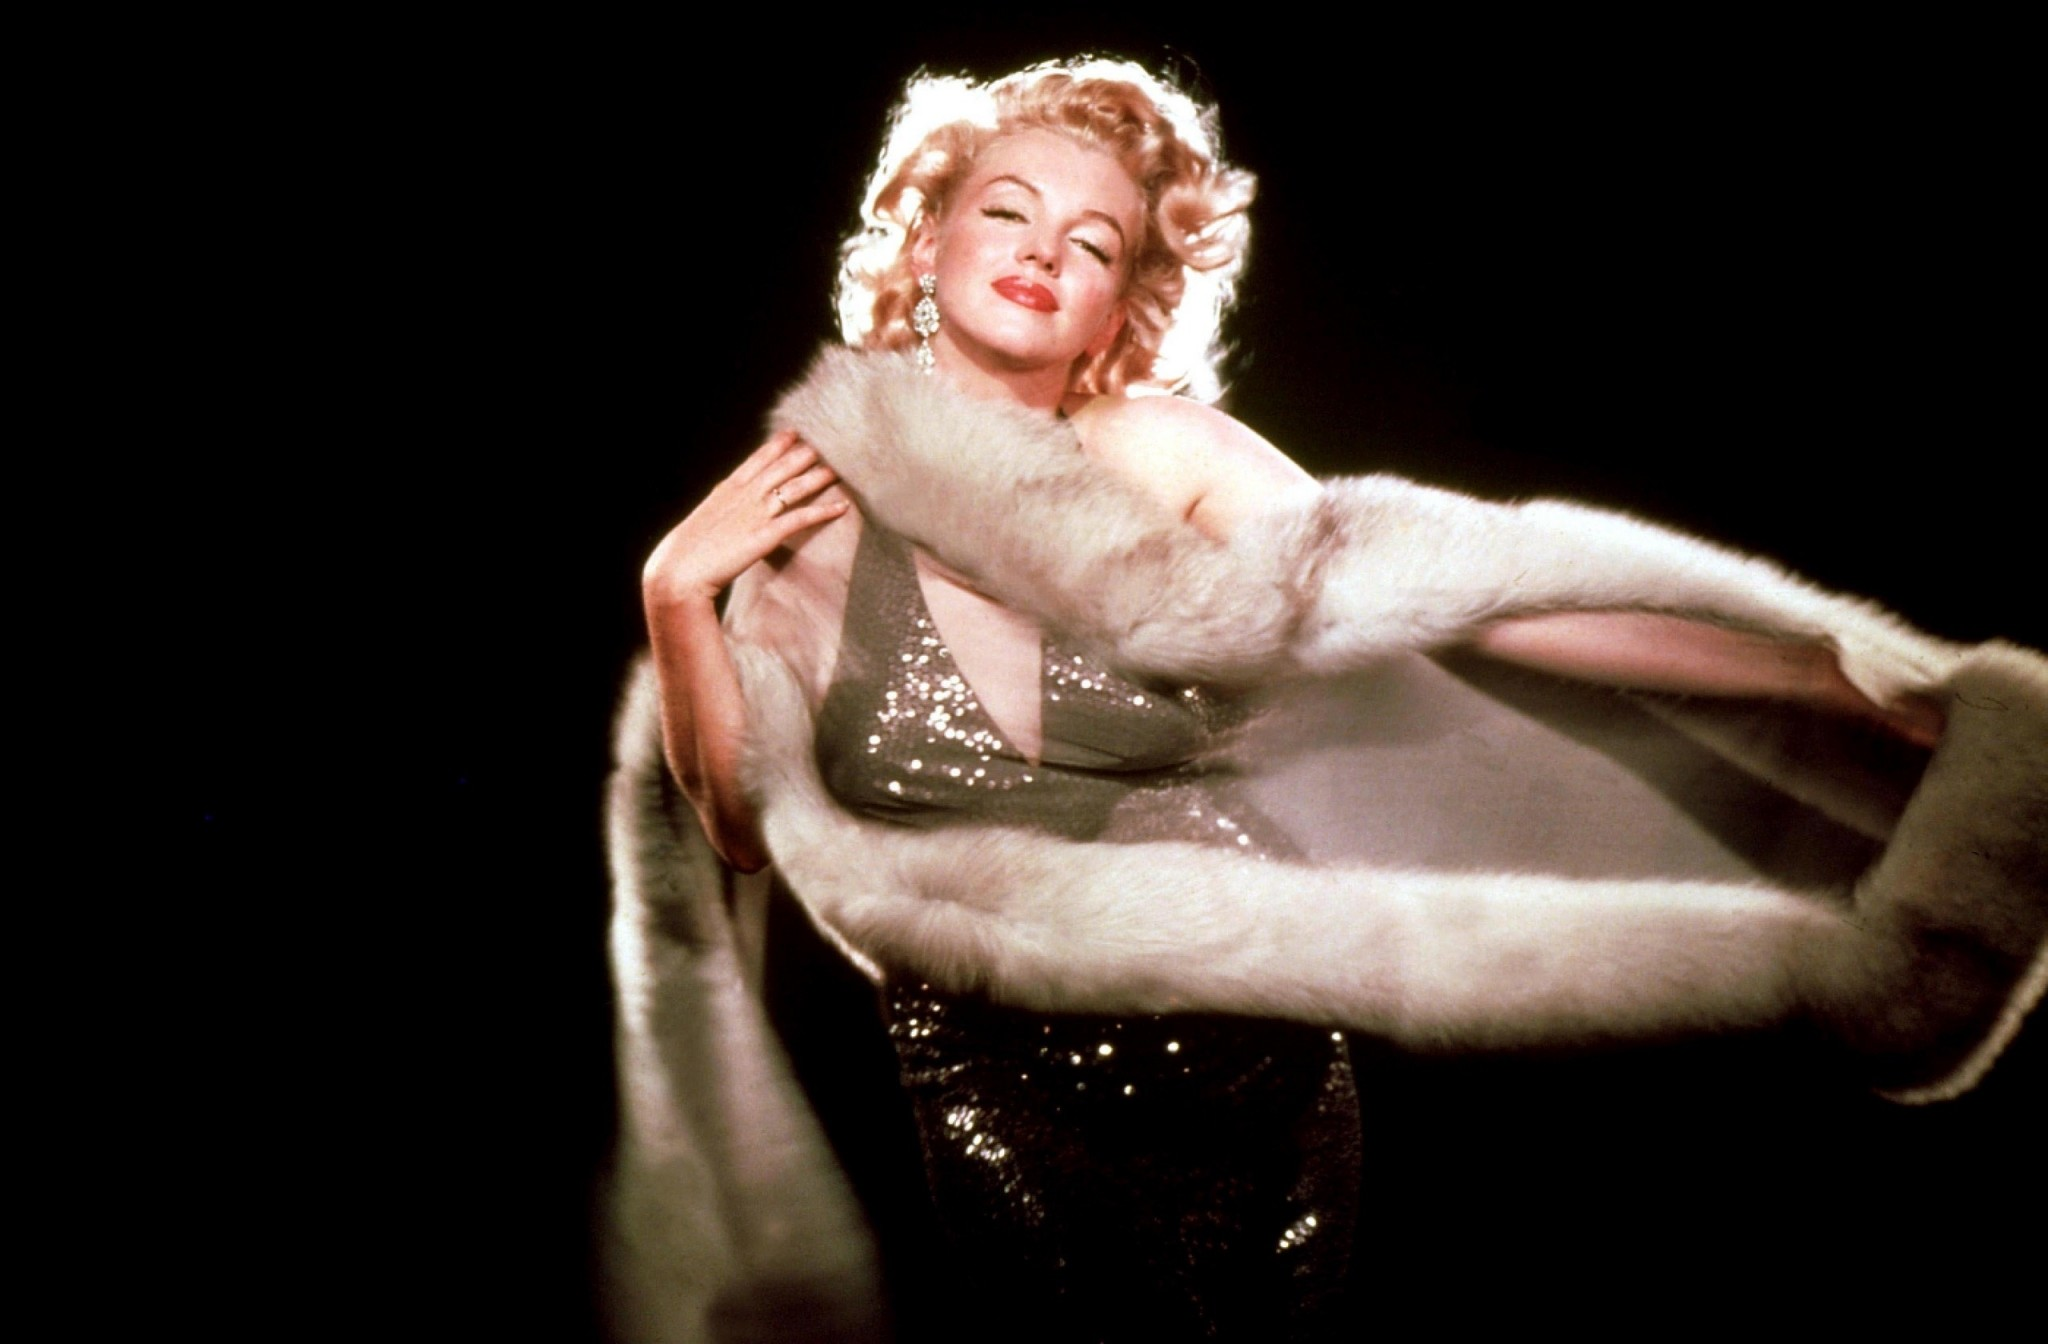 the influence of marilyn monroe to the modern world essay Marilyn monroe marilyn monroe was a glamorous woman who created a mad obsession within the world from her short-lived life marilyn monroe is.